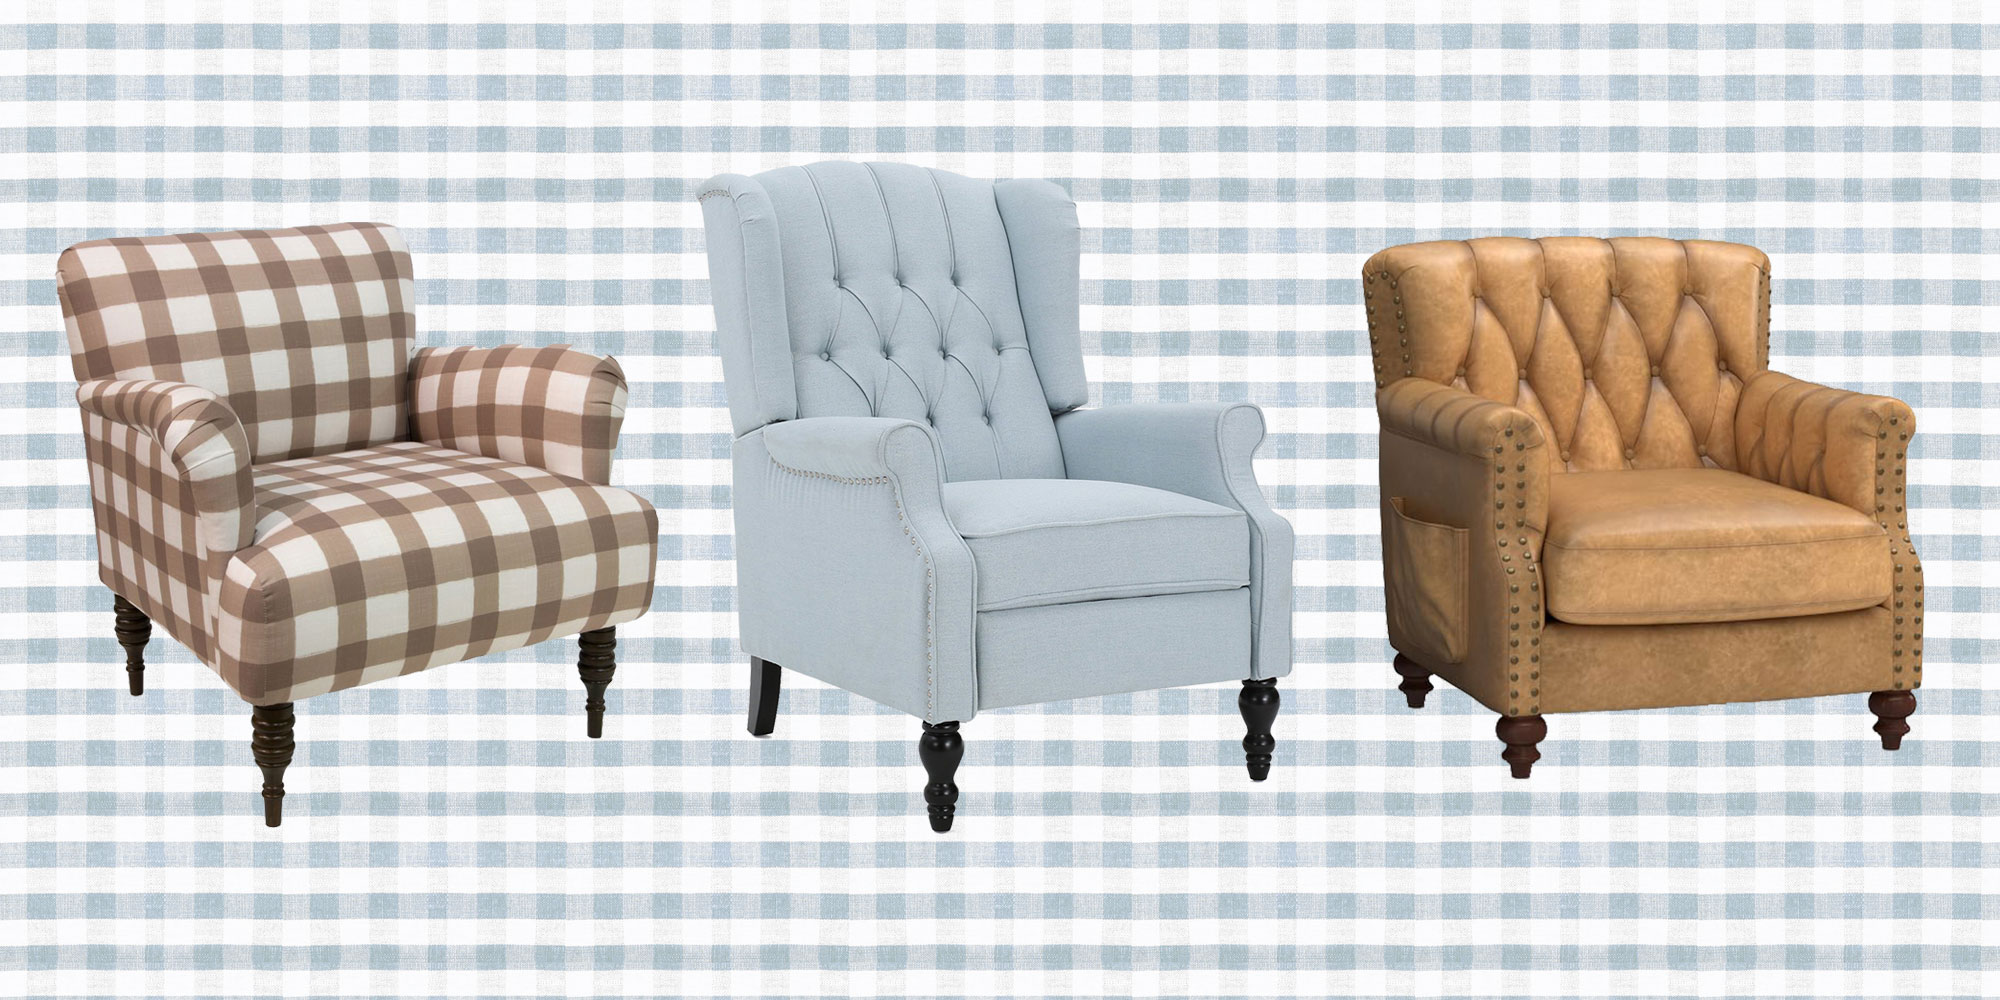 Cozy Chairs 10 Best Cozy Chairs For Living Rooms Most Comfortable